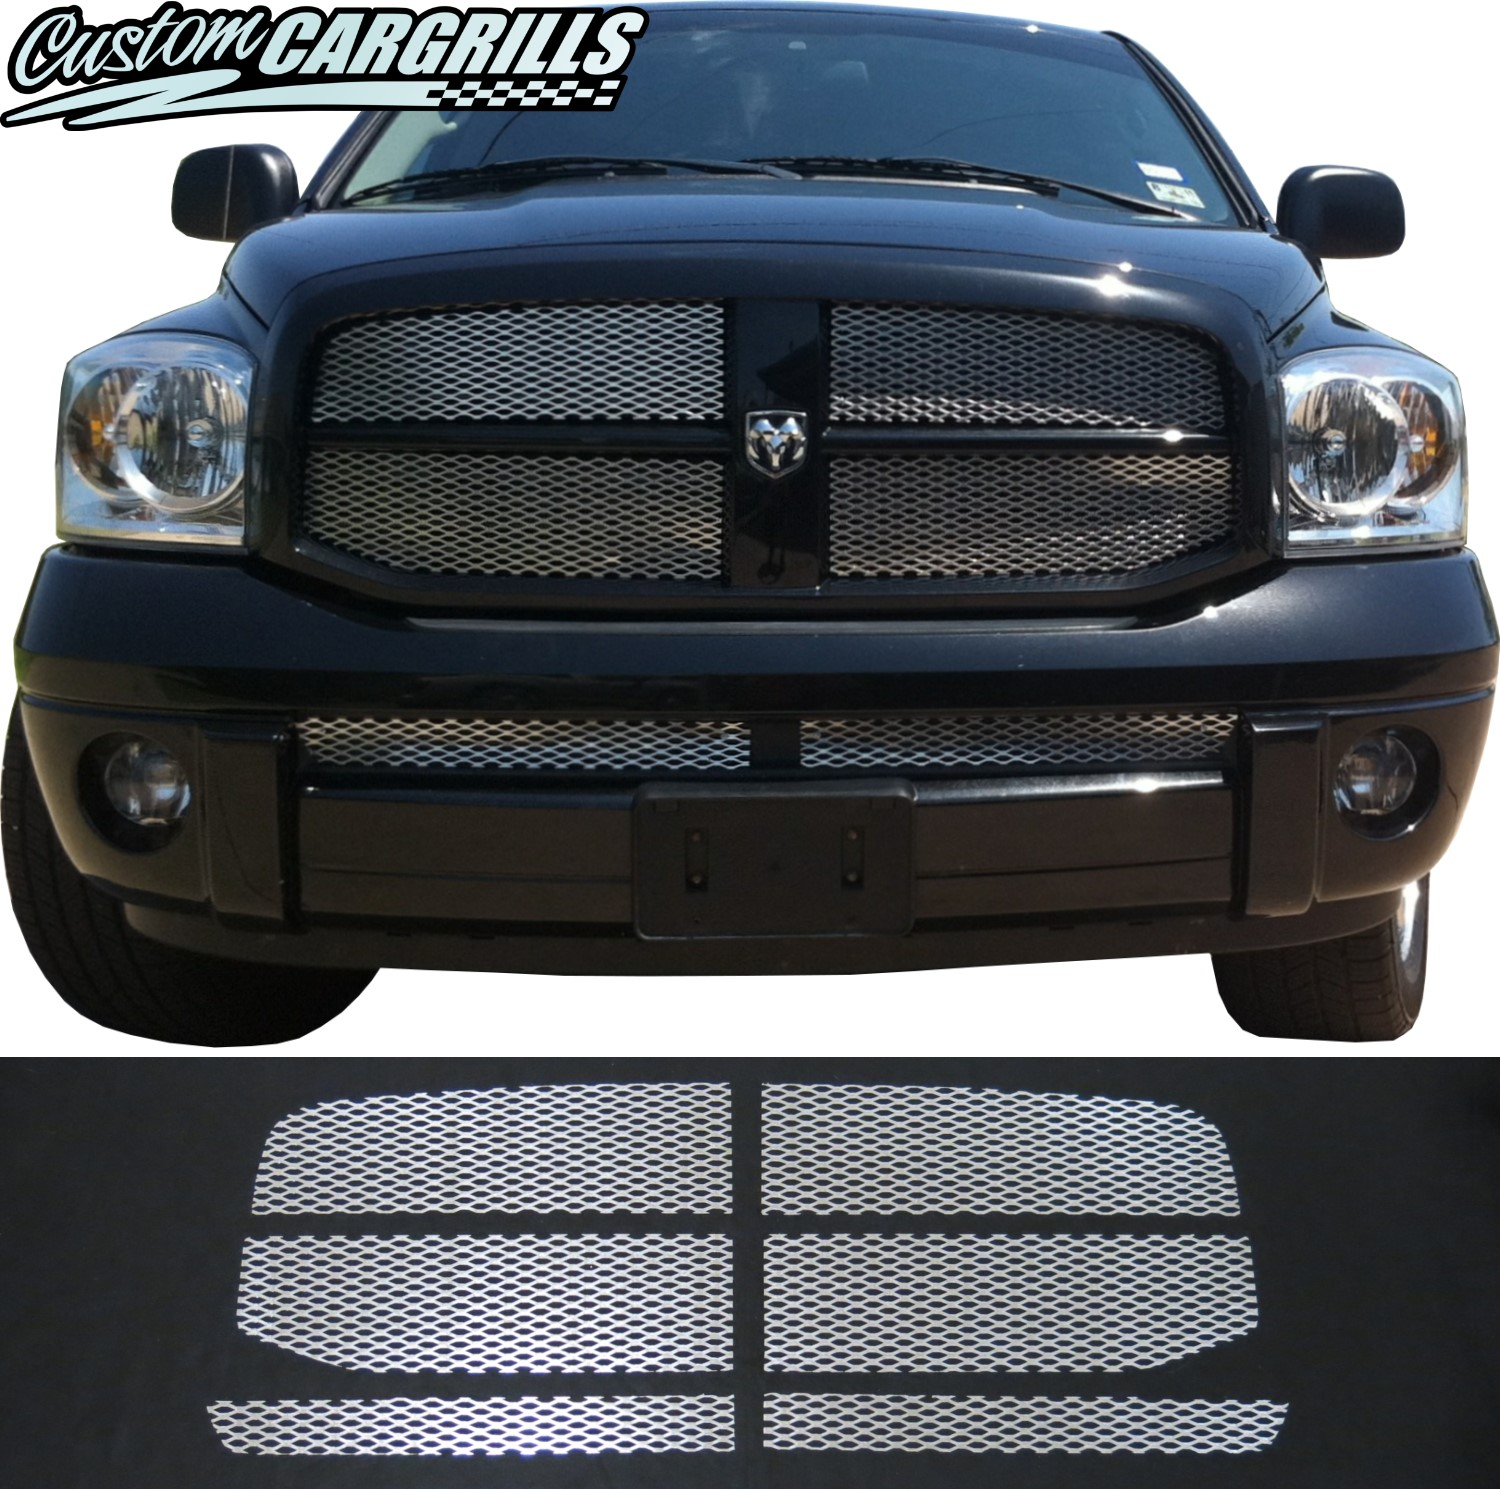 2006 - 2008 Dodge Ram Mesh Grill Kit